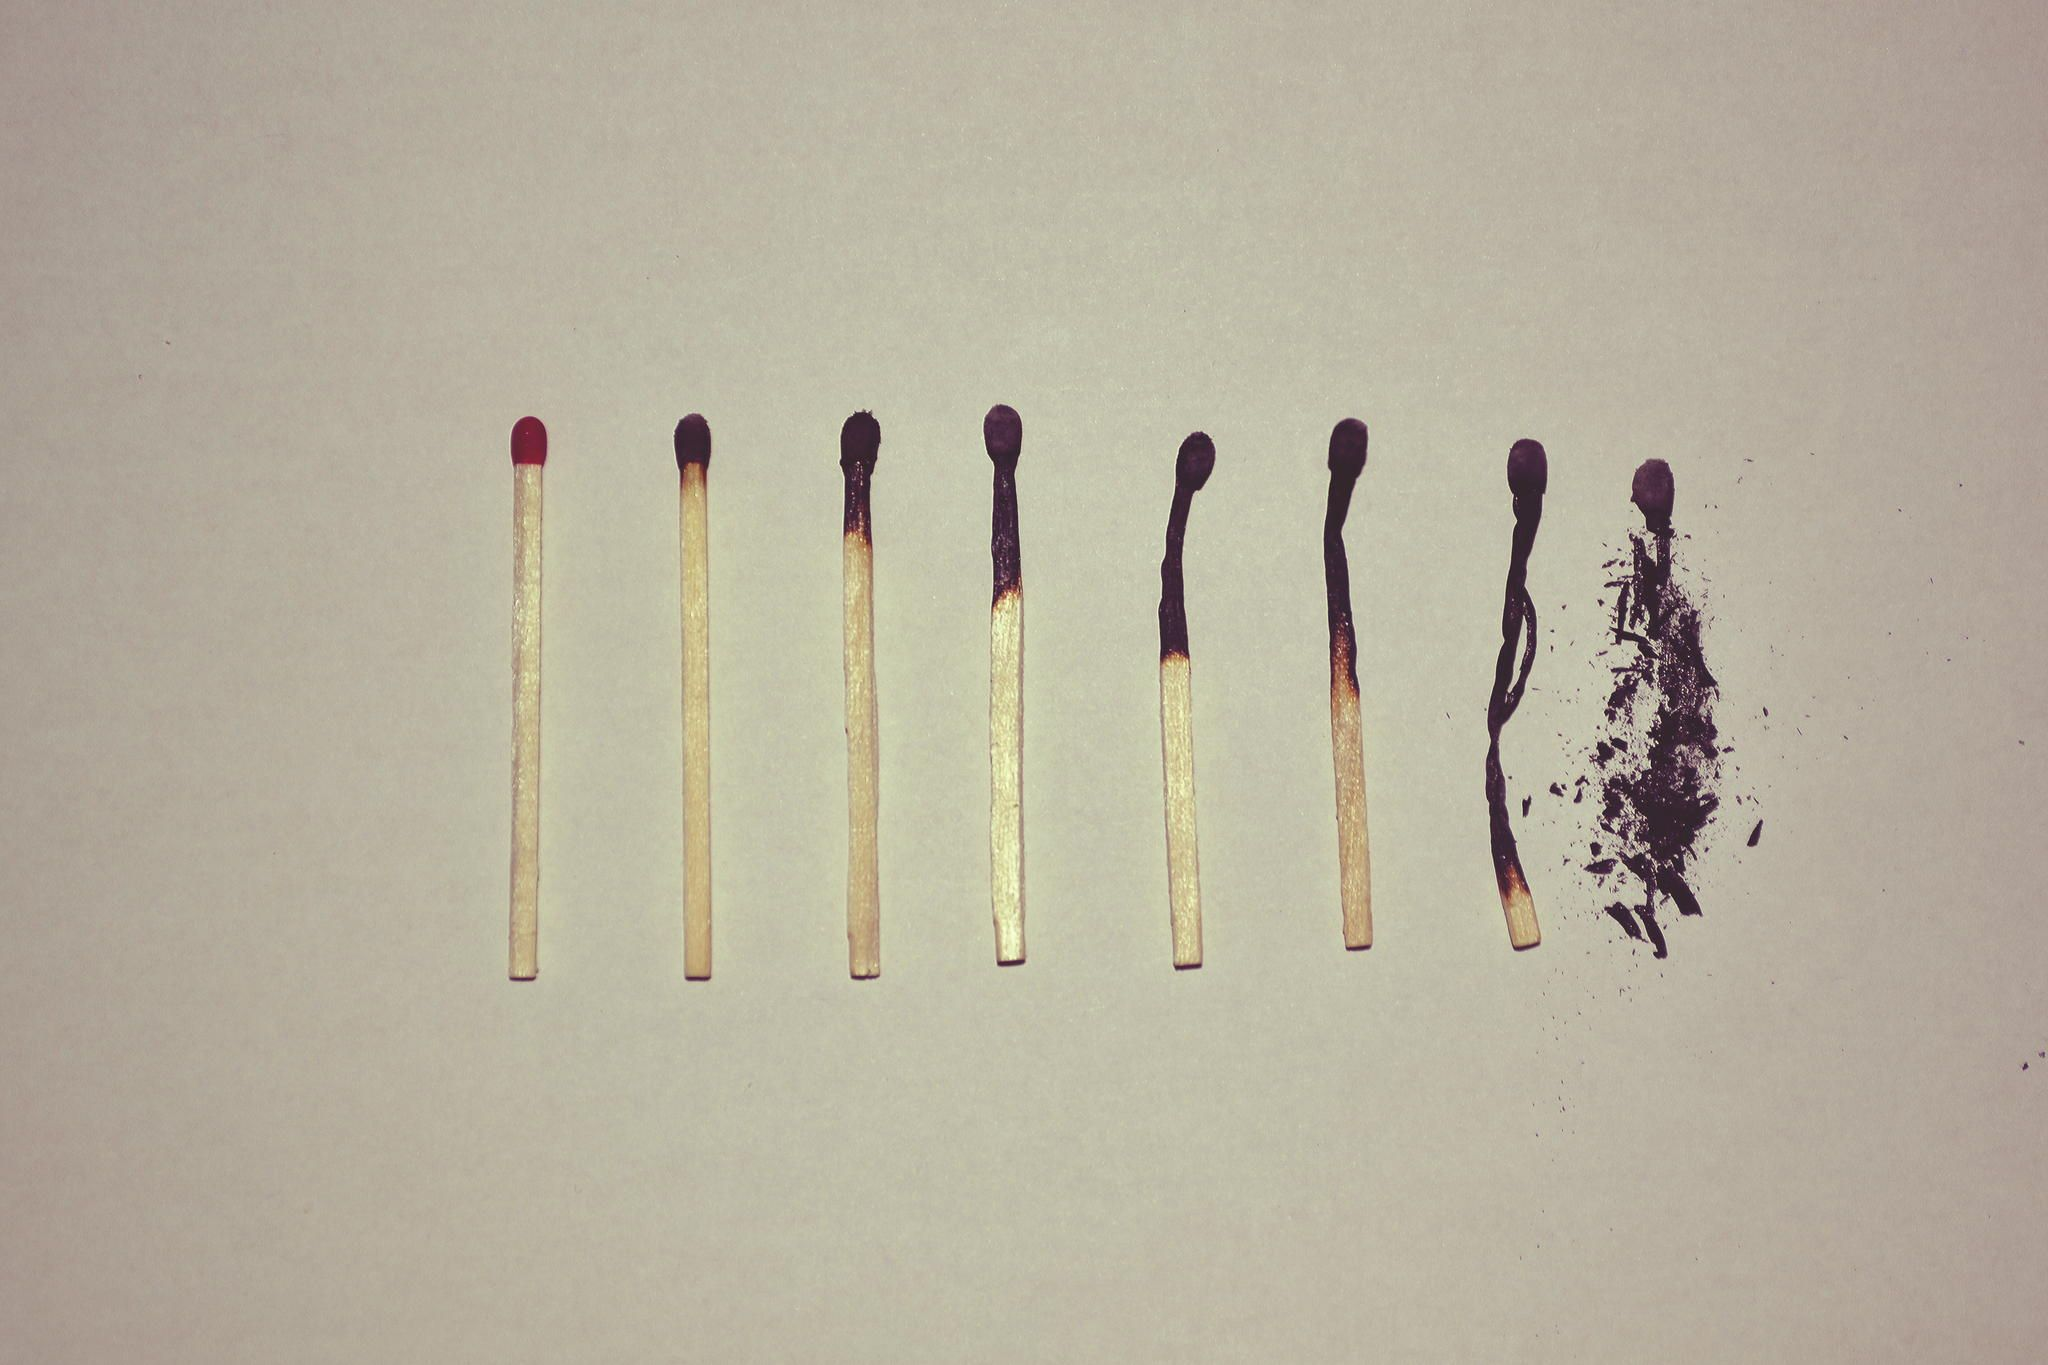 """Depicting life trough matches or how matches go trough their """"life"""""""